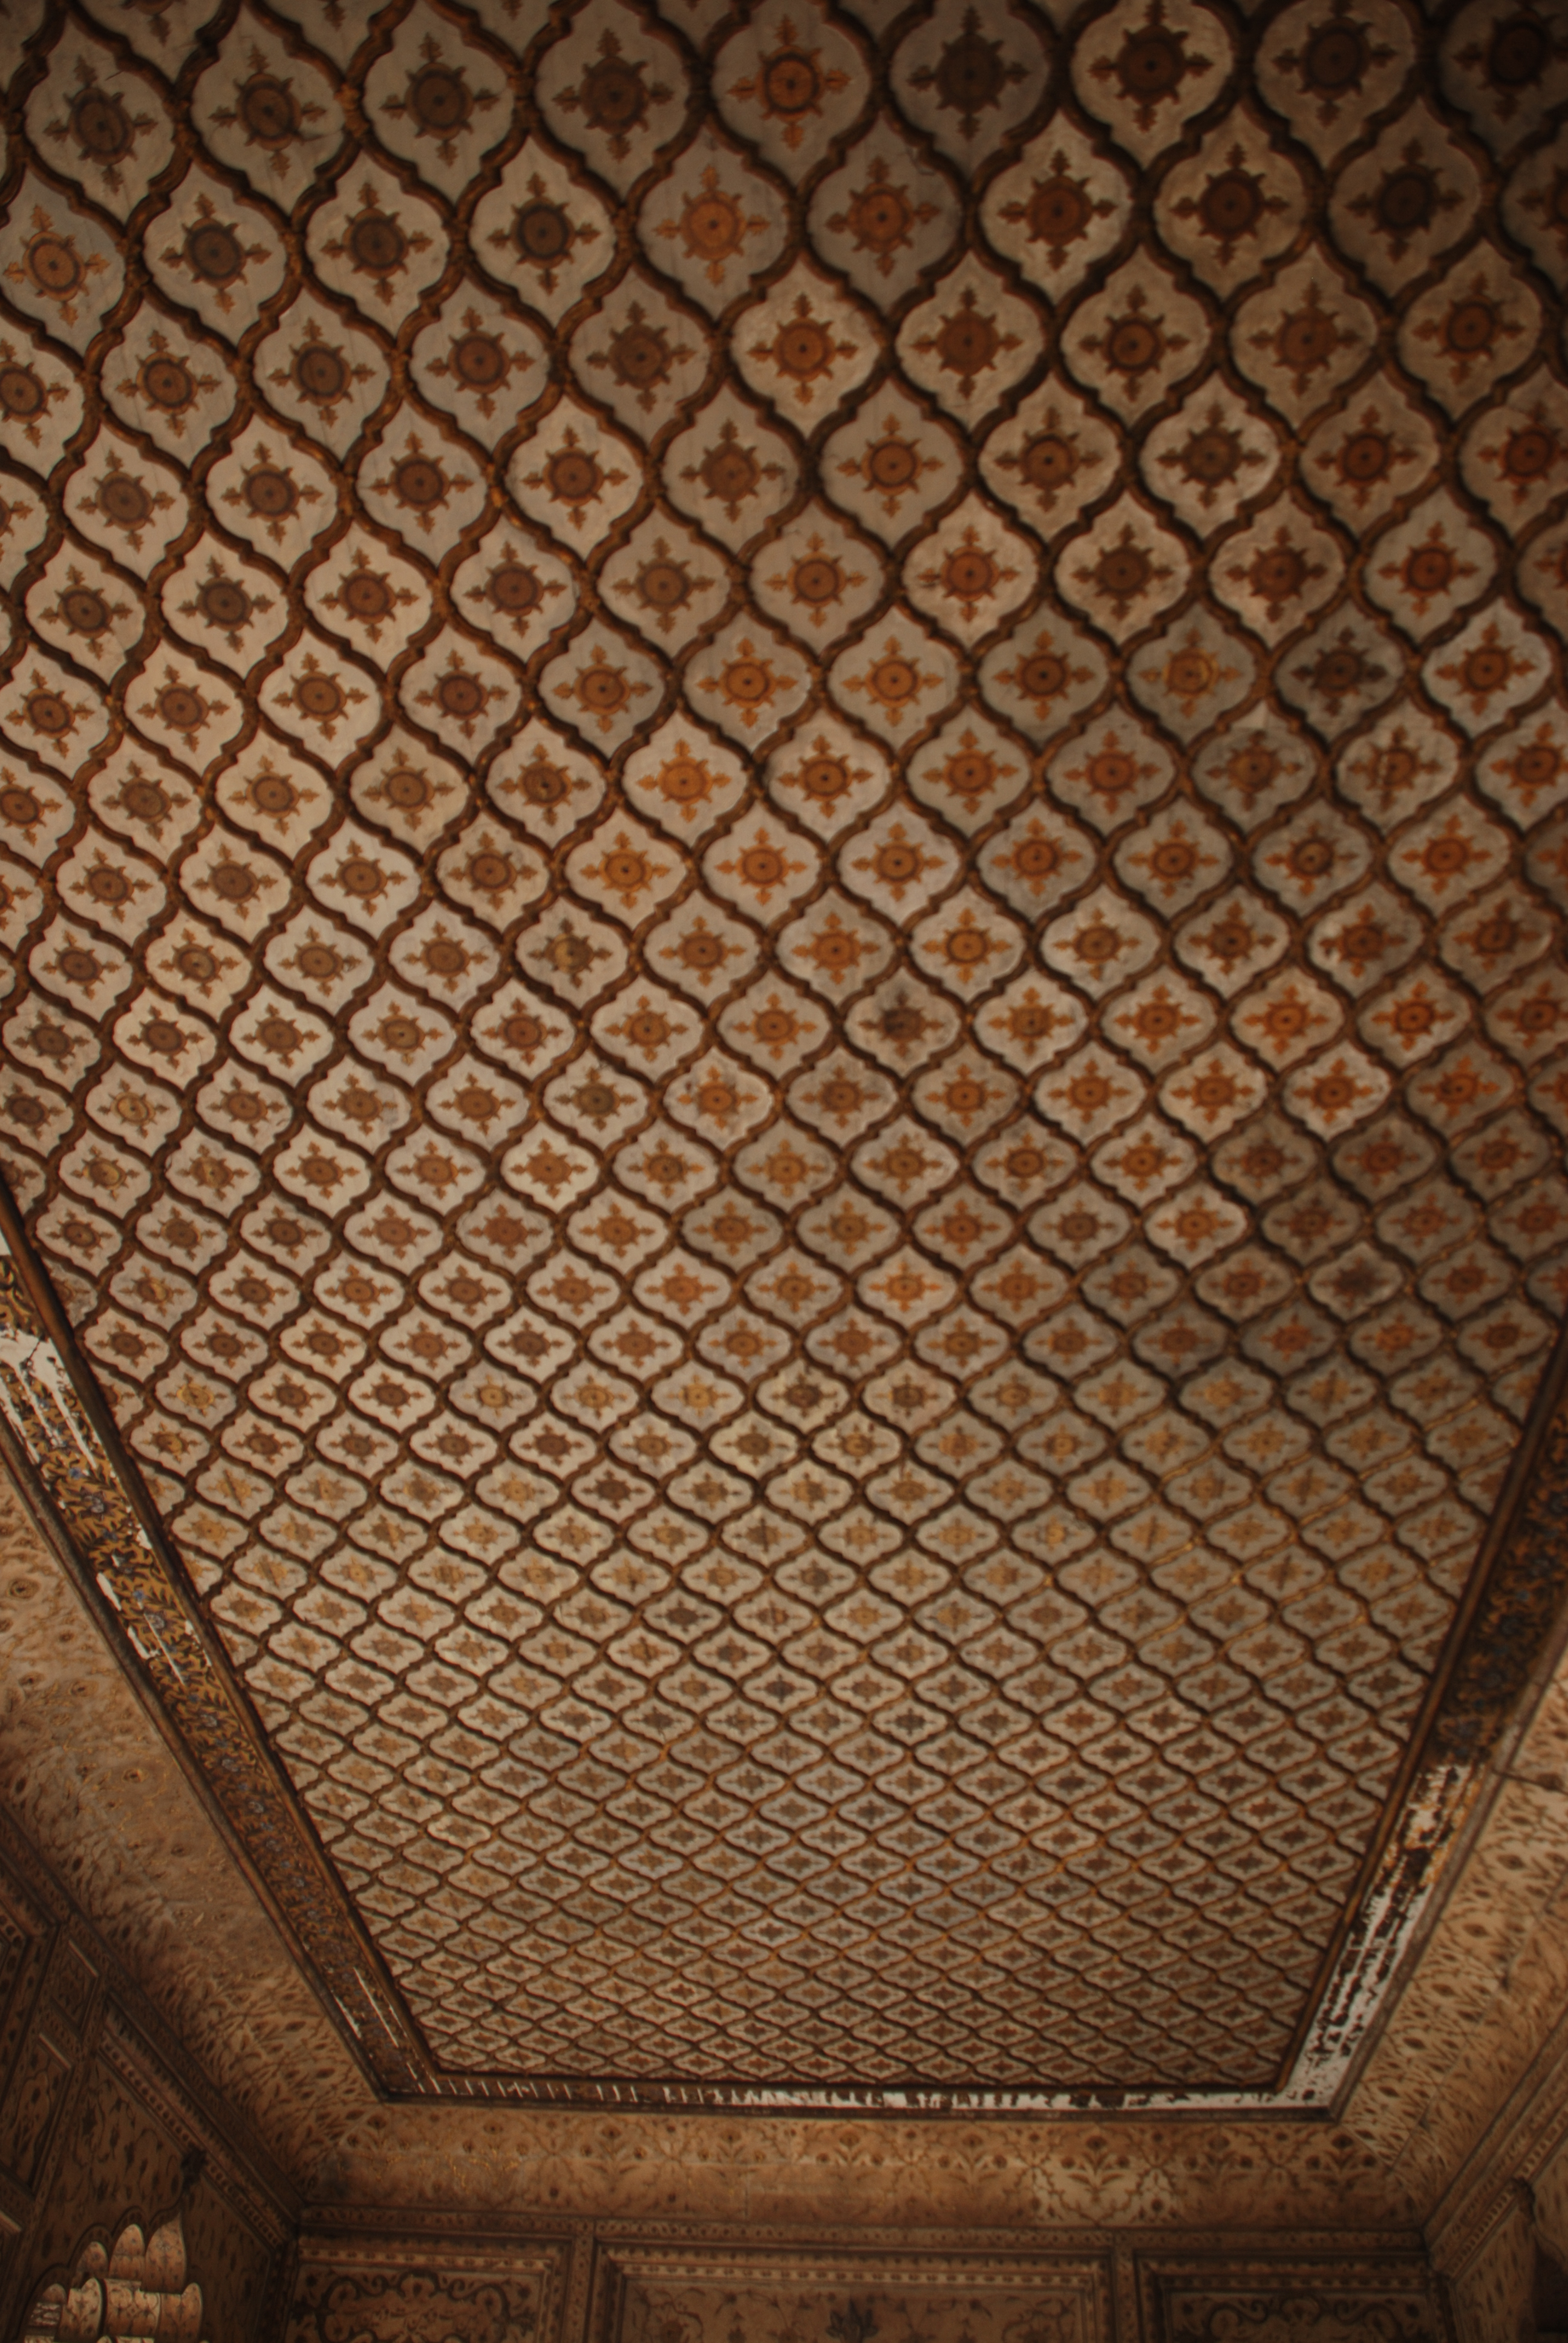 Gilded rich ceiling of Diwan-i-Khas, the hall of private audience